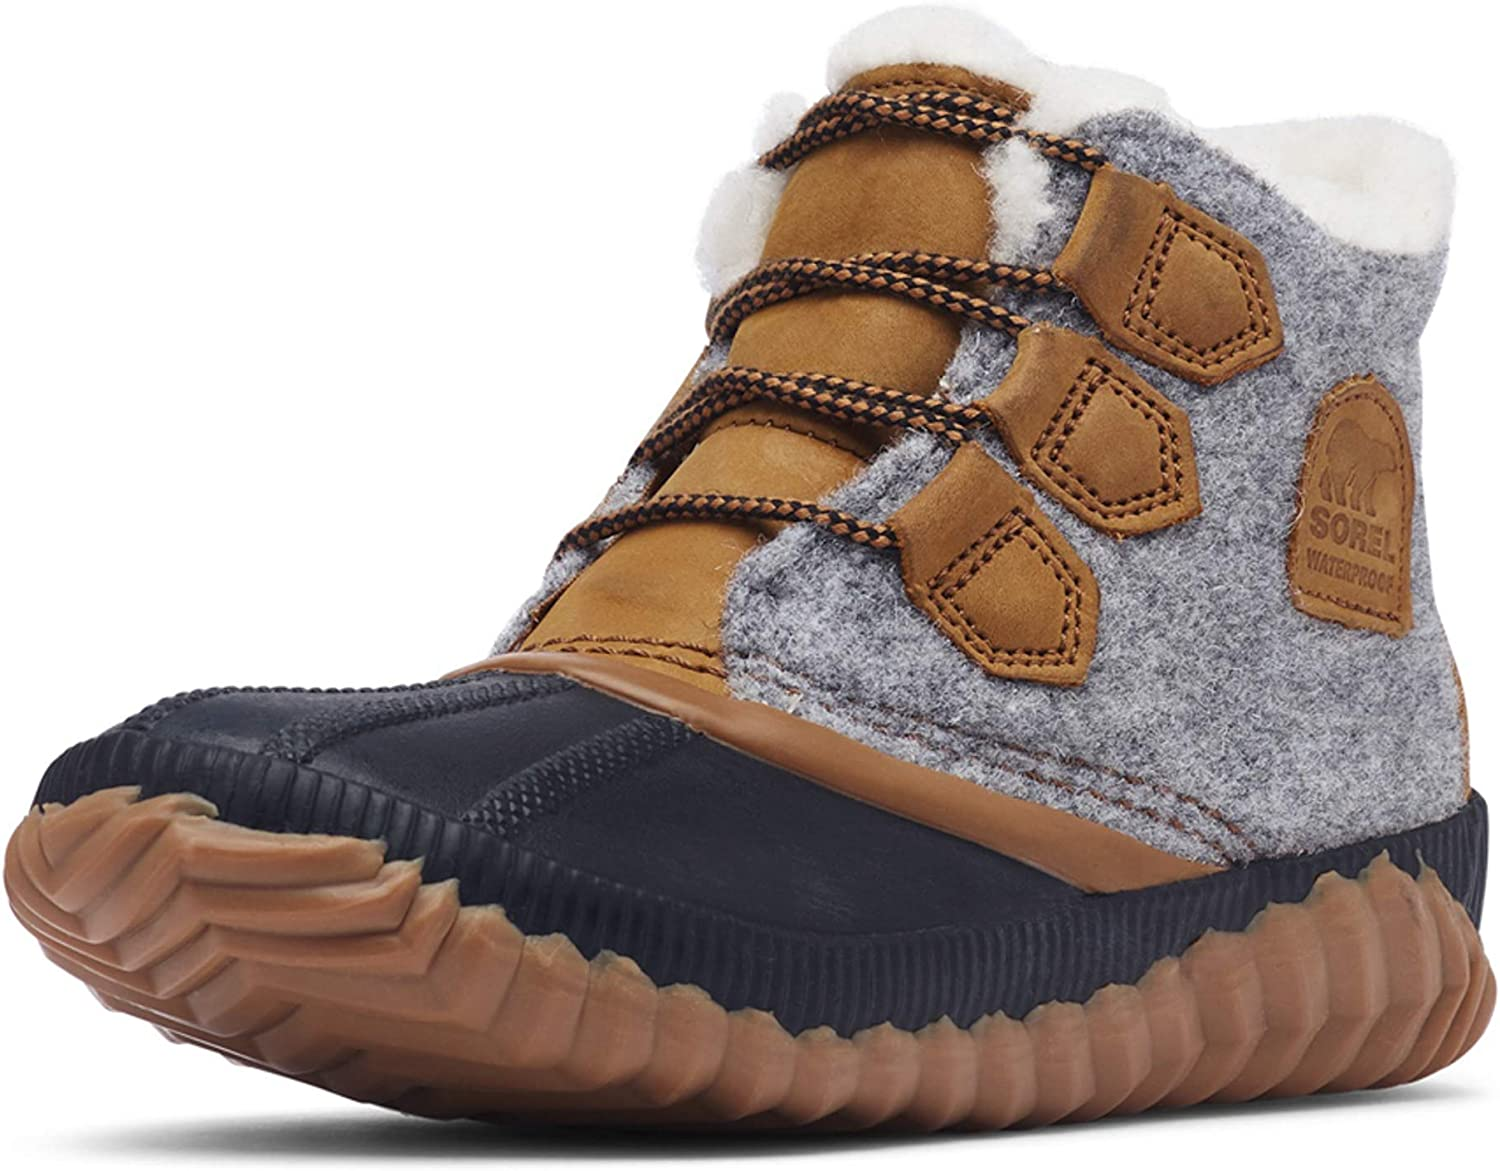 | Sorel Women's Out 'N About Plus Boots | Snow Boots